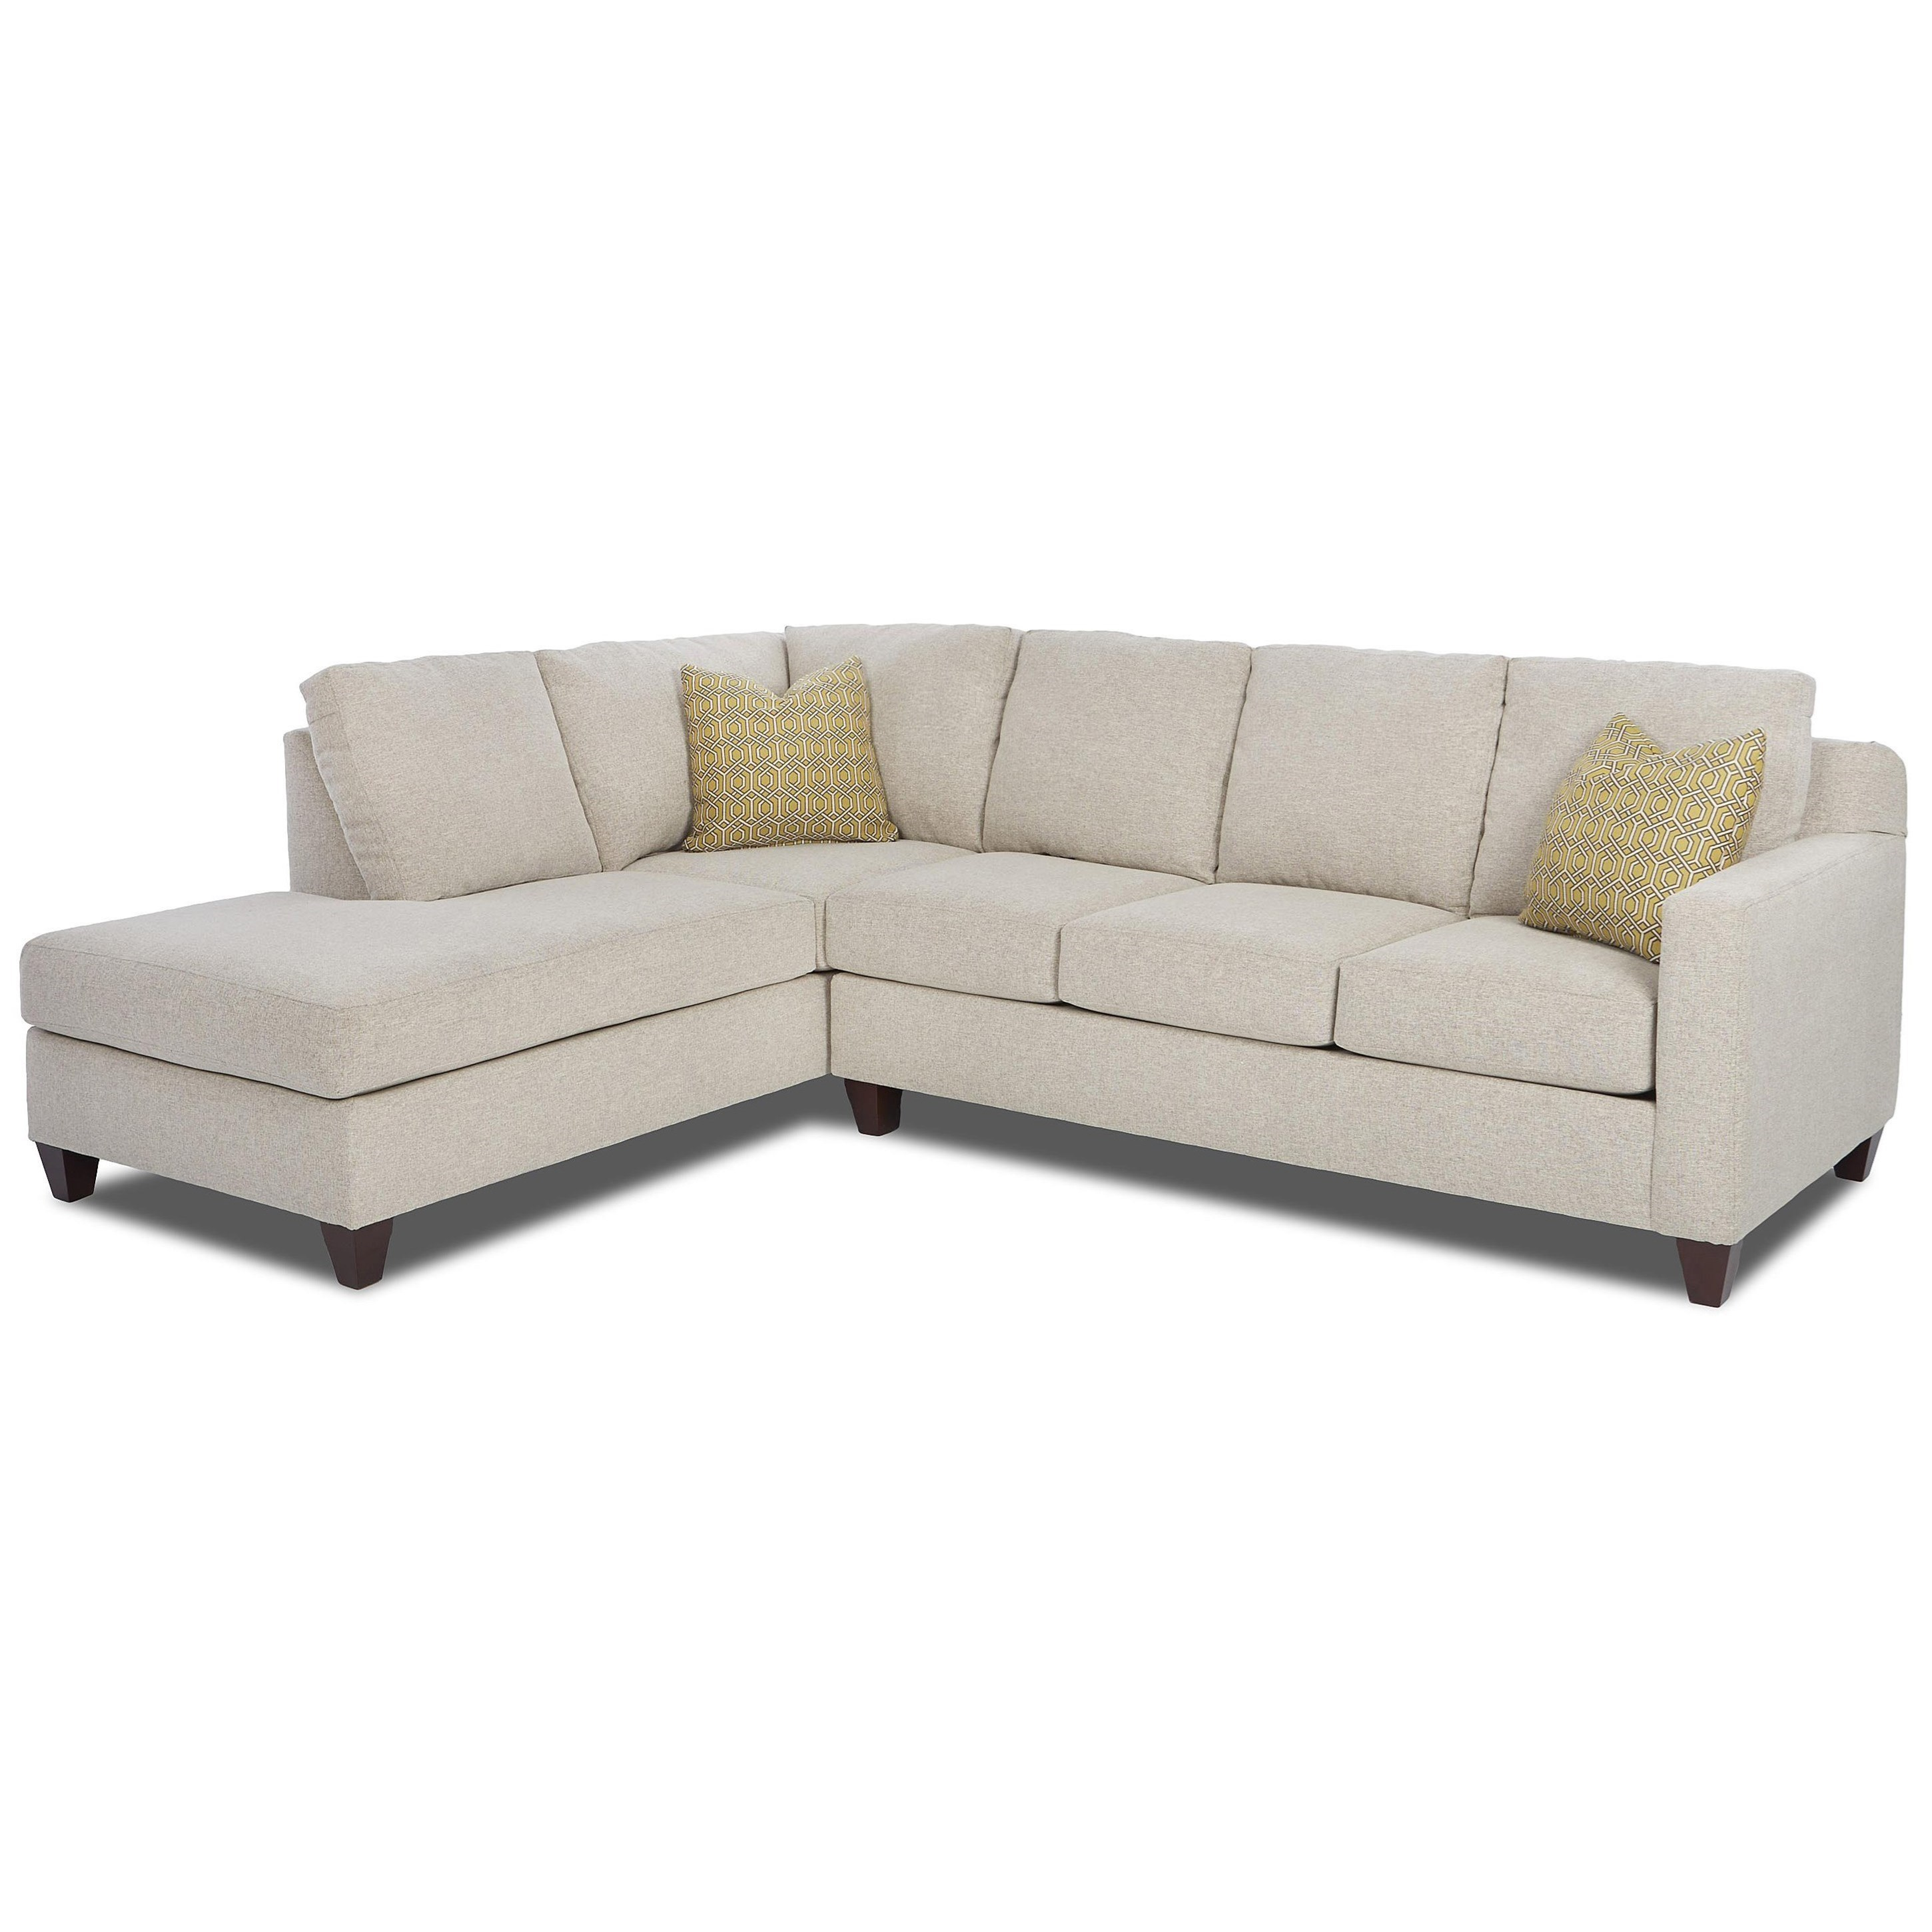 Contemporary 2-Piece Sectional with Left Arm Facing Sofa Chaise